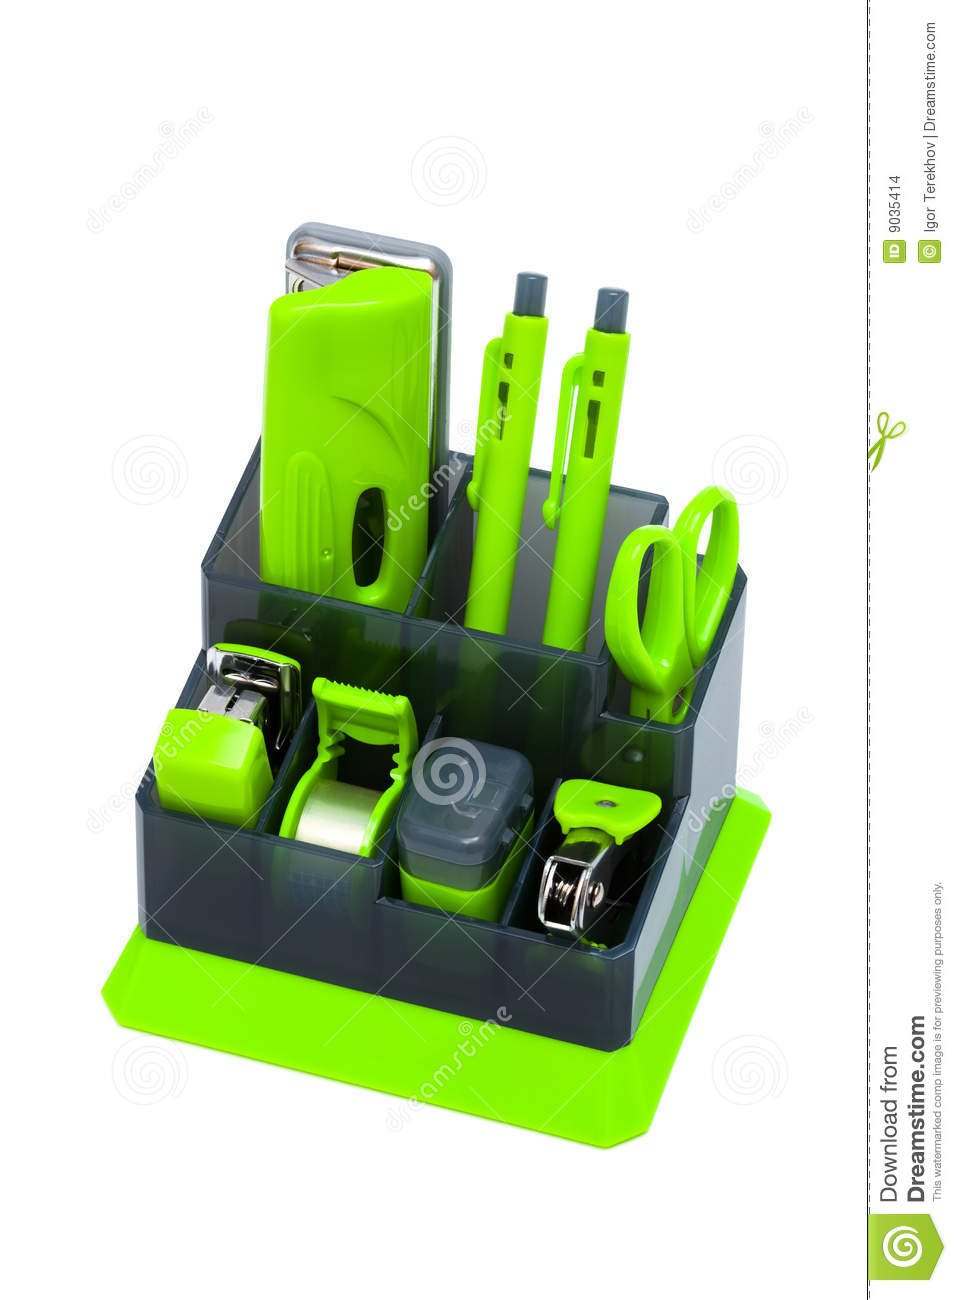 More similar stock images of ` Green desk organizer `